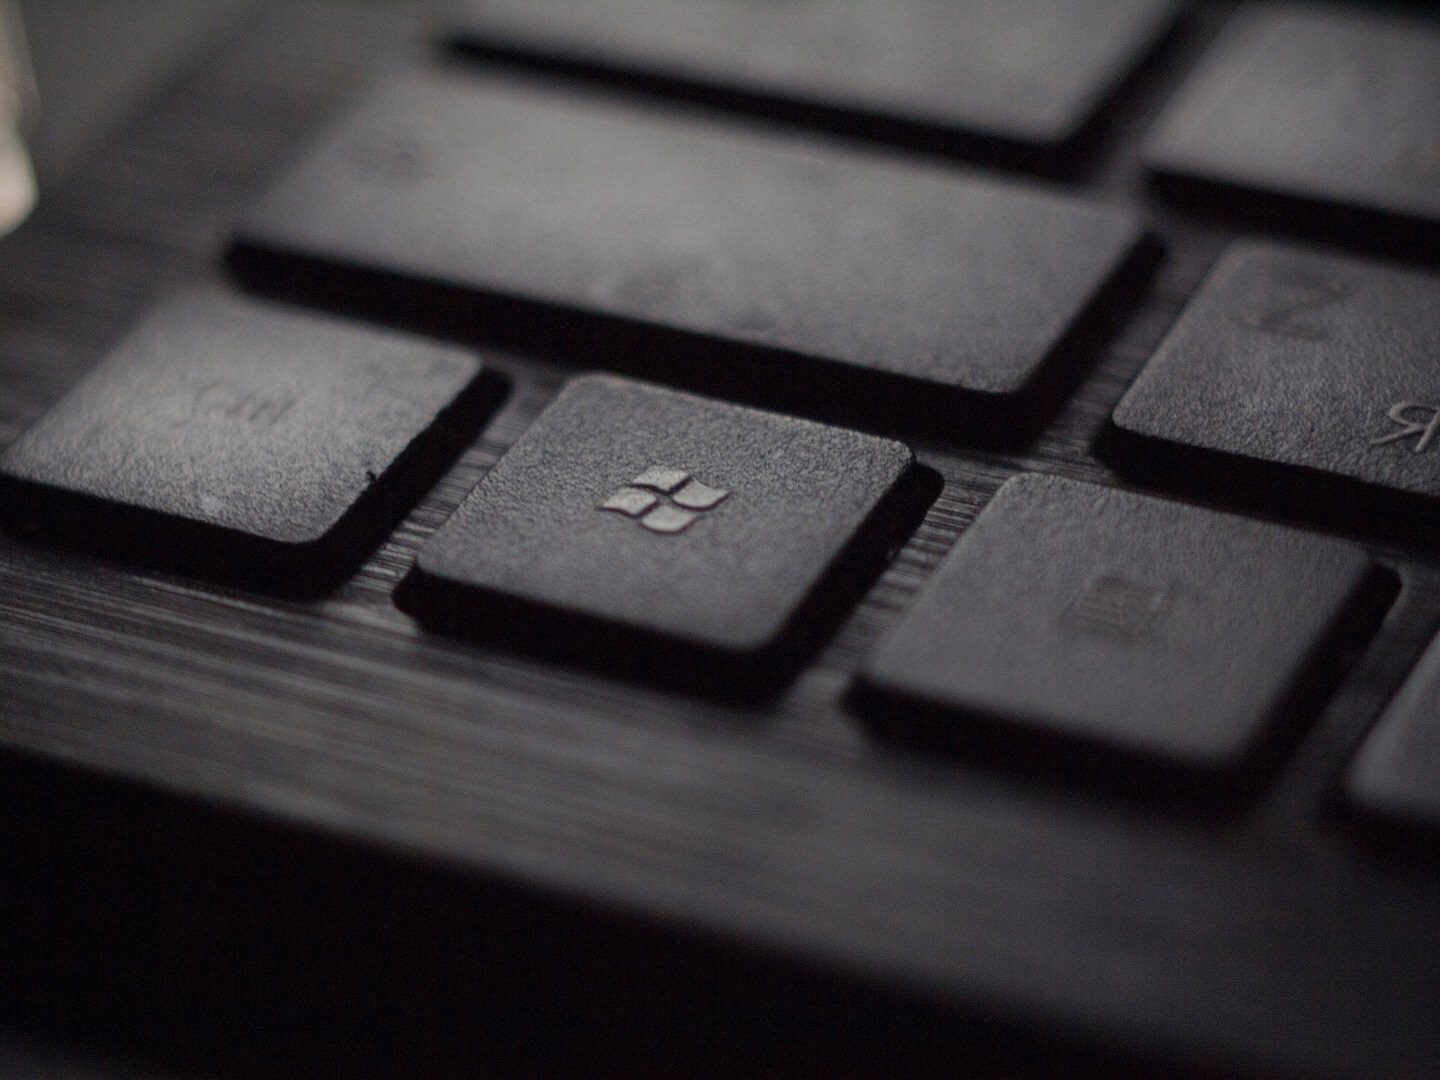 A photo of a black keyboard with the Windows key being the focal point.